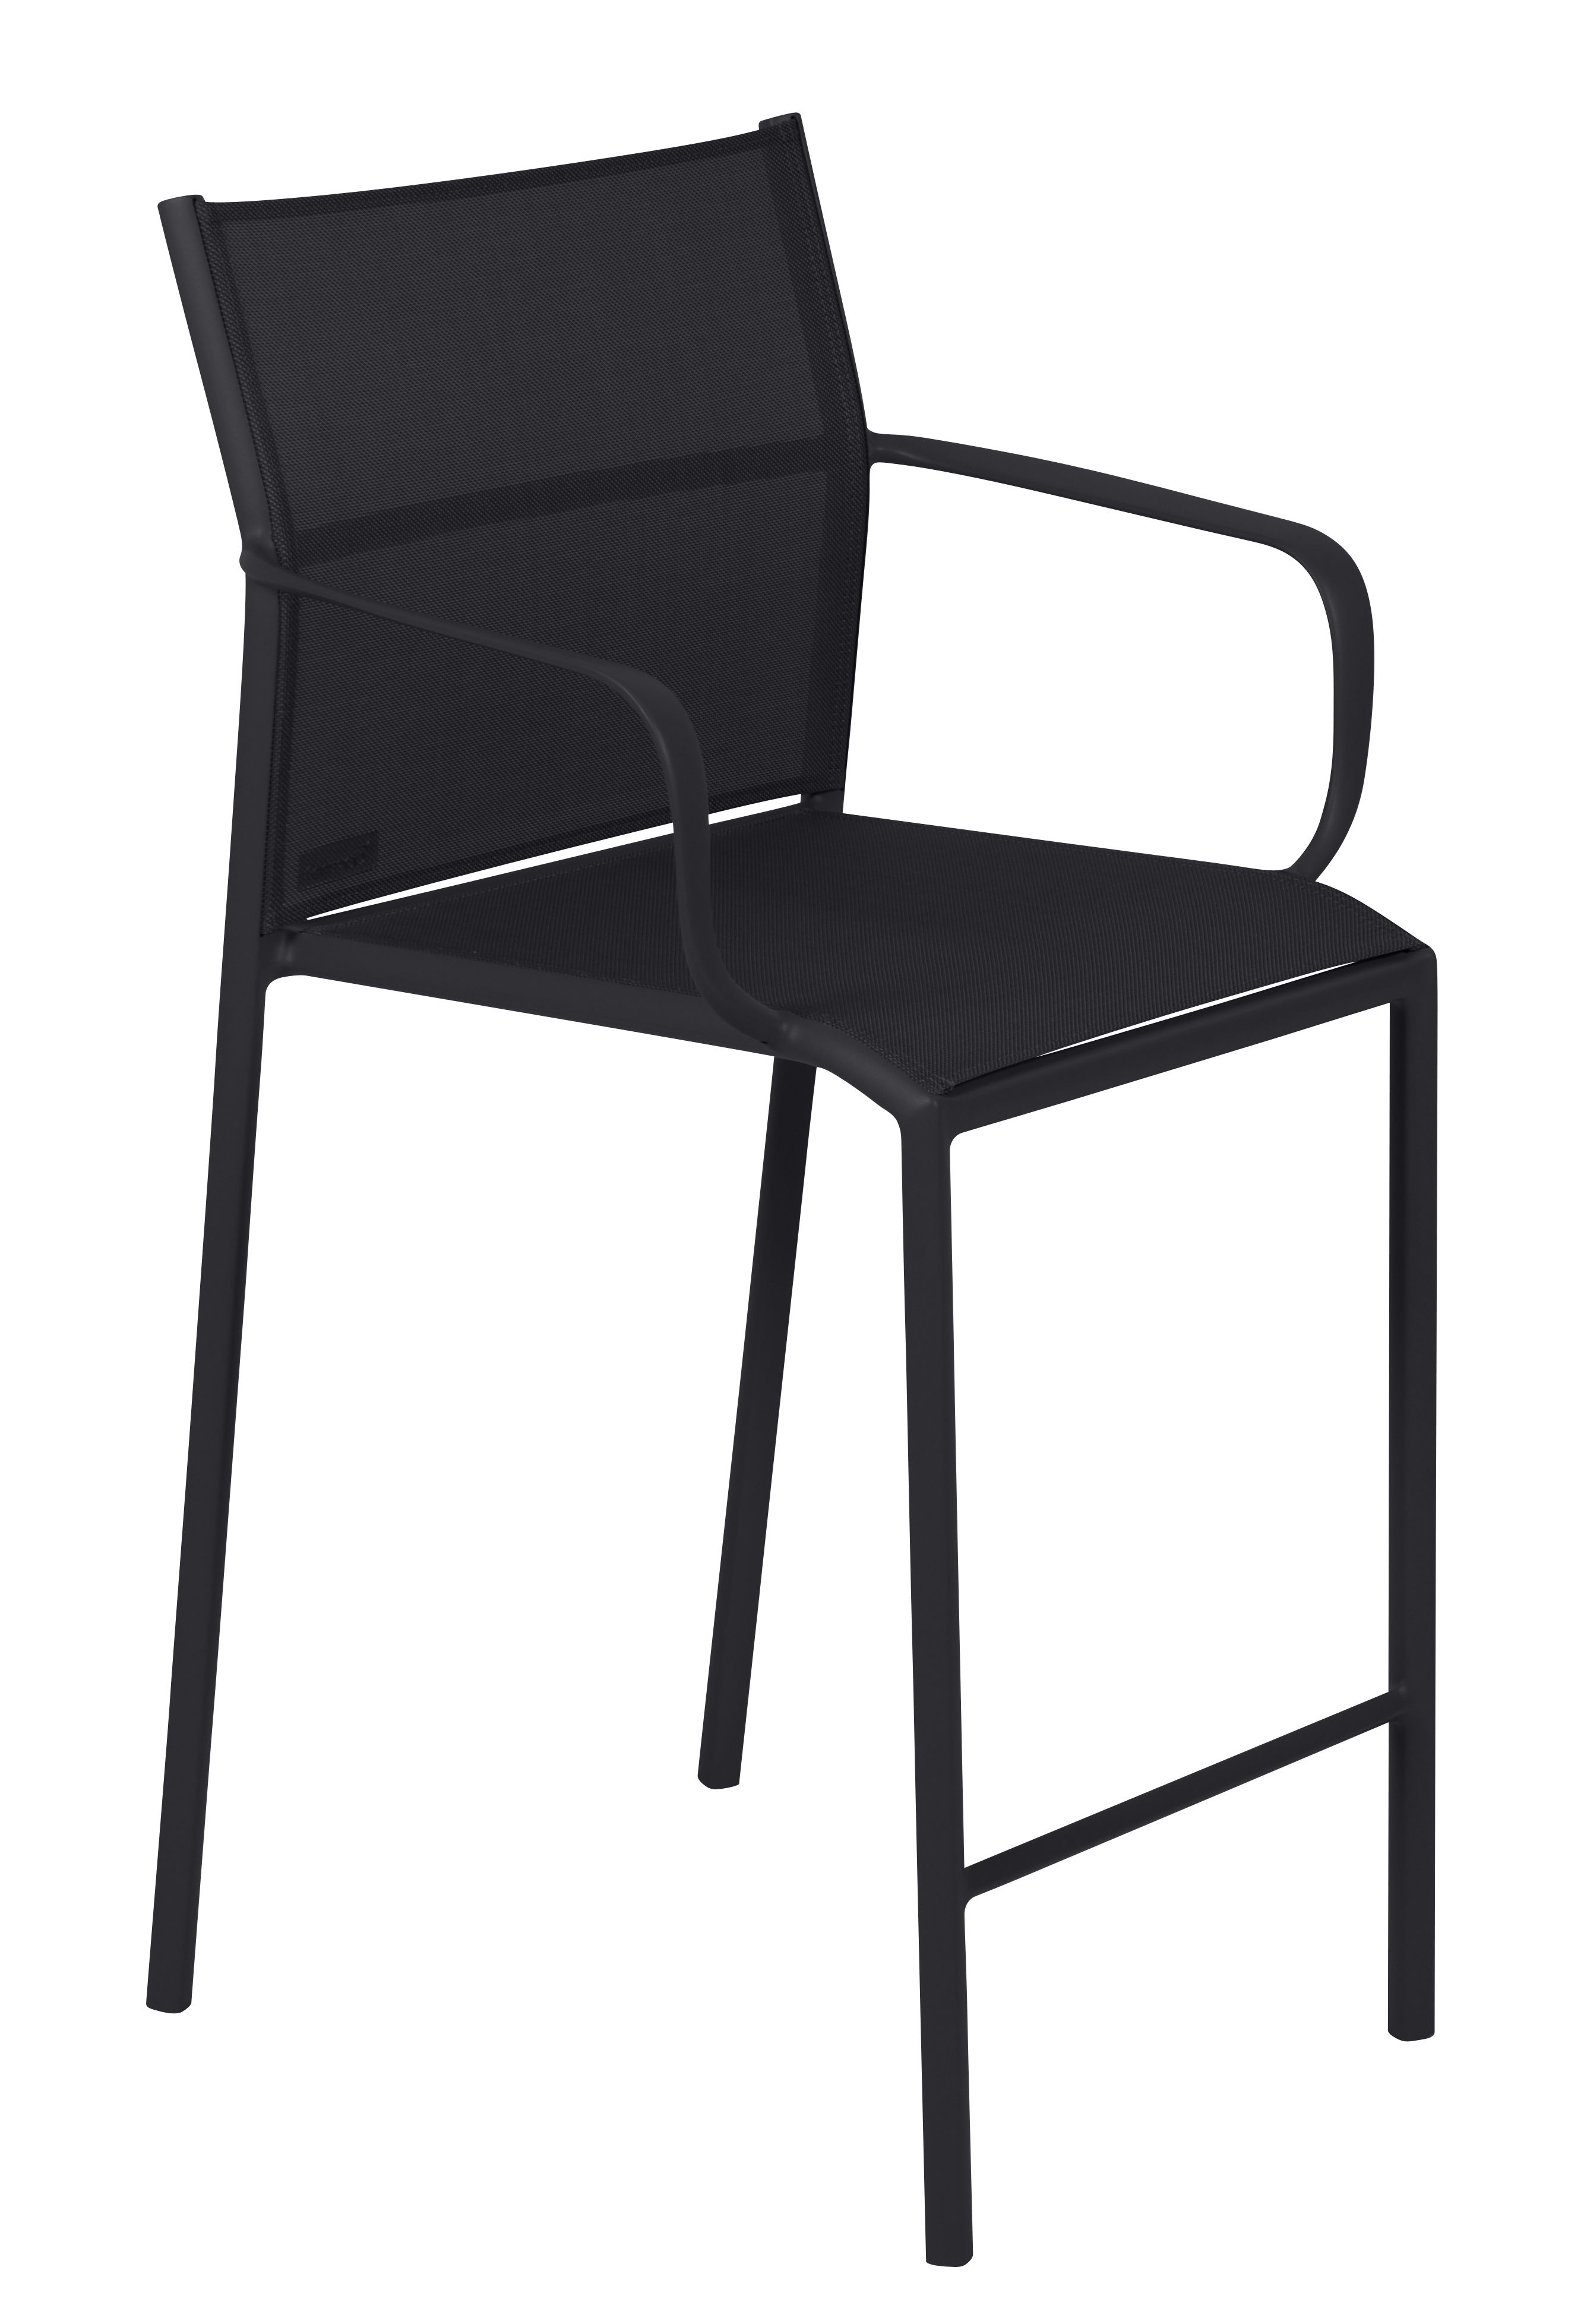 Furniture - Bar Stools - Cadiz High stool - / With armrests - H 65 cm by Fermob - Licorice - Batyline® fabric, Lacquered aluminium